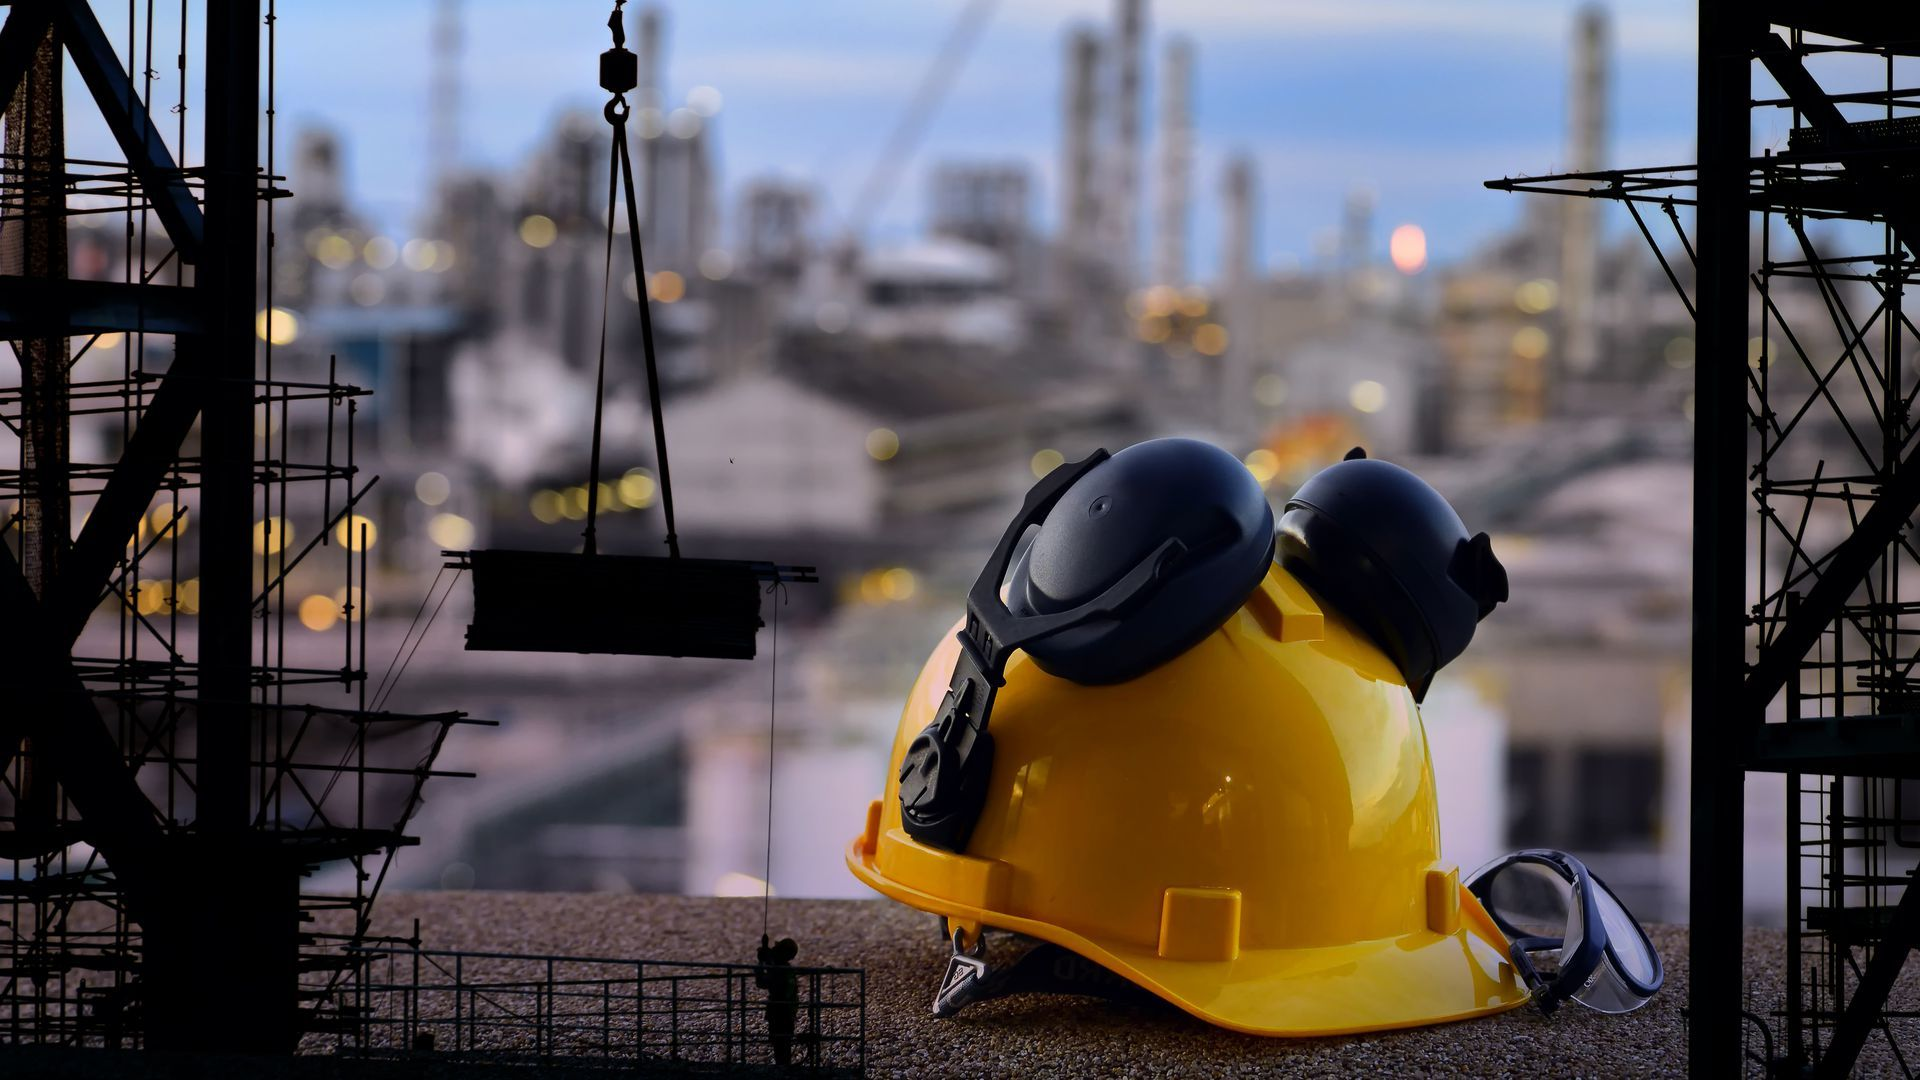 job safety in confined spaces